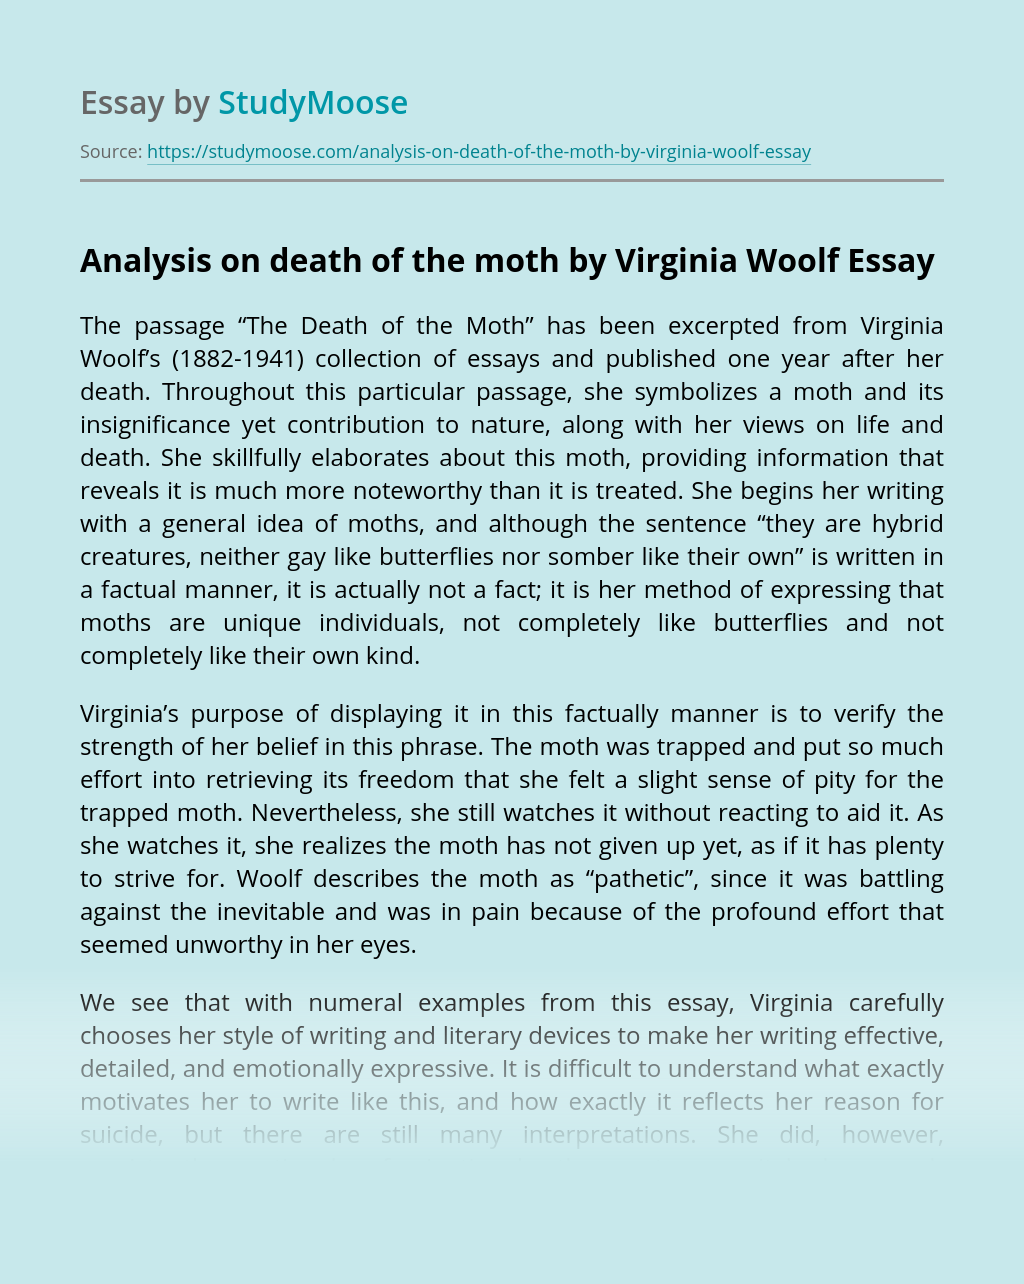 Analysis on death of the moth by Virginia Woolf